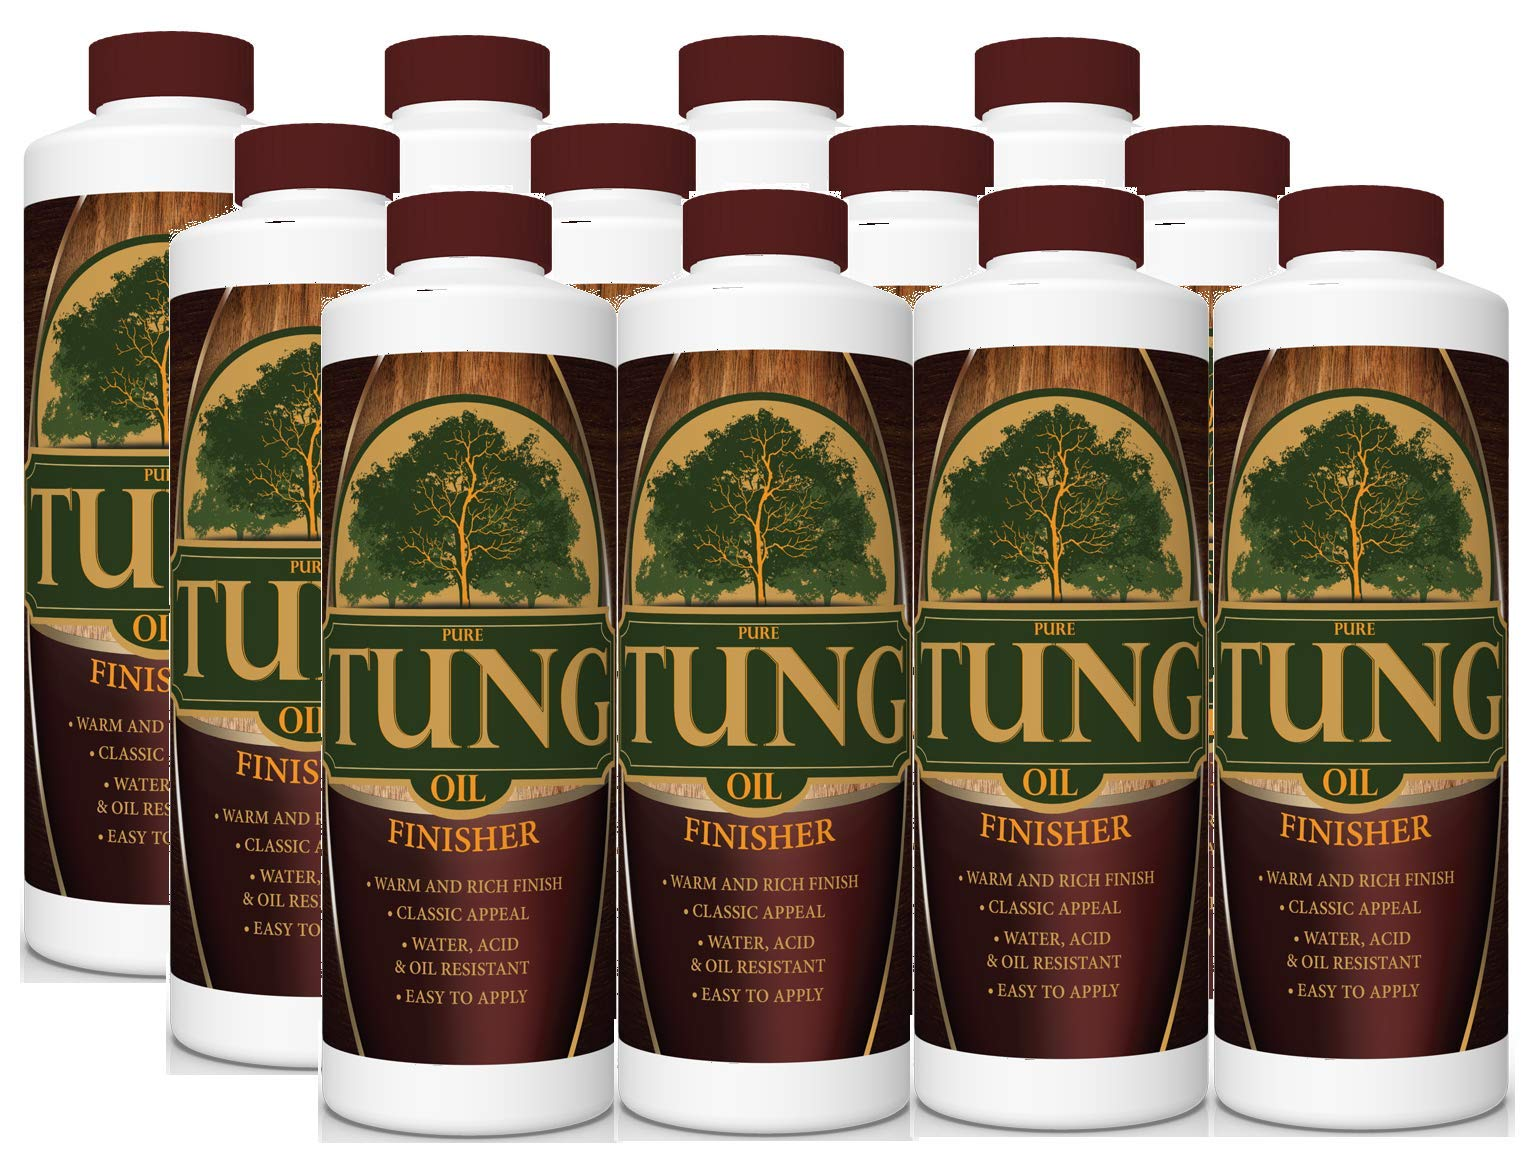 100% Pure Tung Oil Finish Wood Stain & Natural Sealer for All Types of Wood (12 x 32 oz Case) by FDC Chem (Image #1)